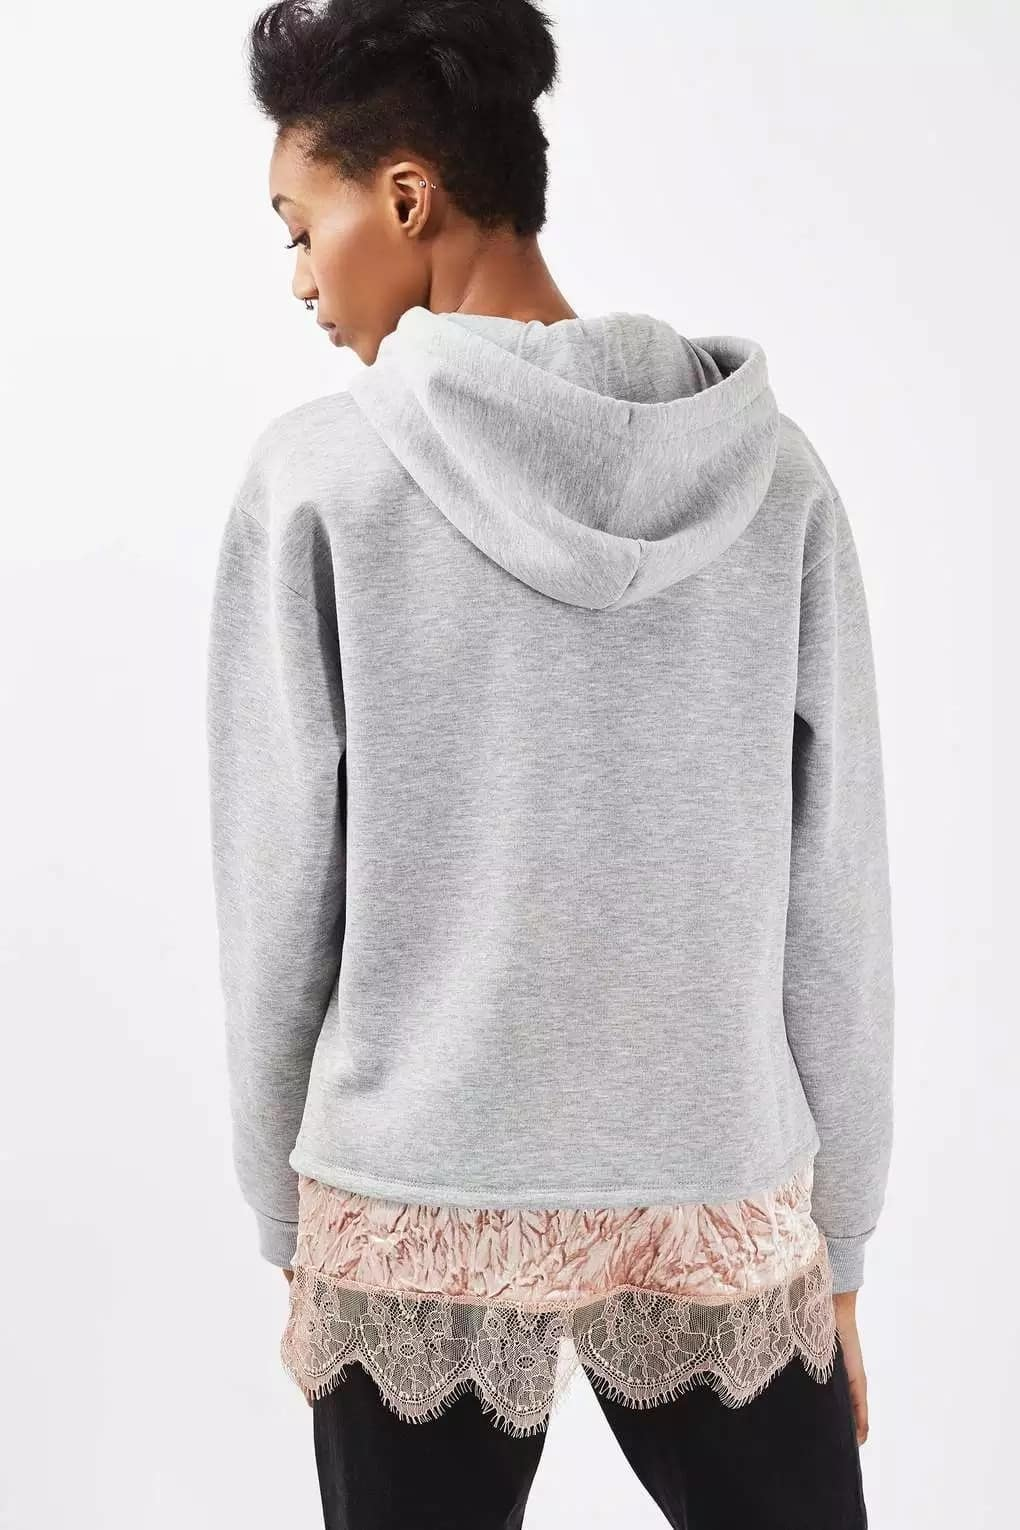 Sweater with French lace trim